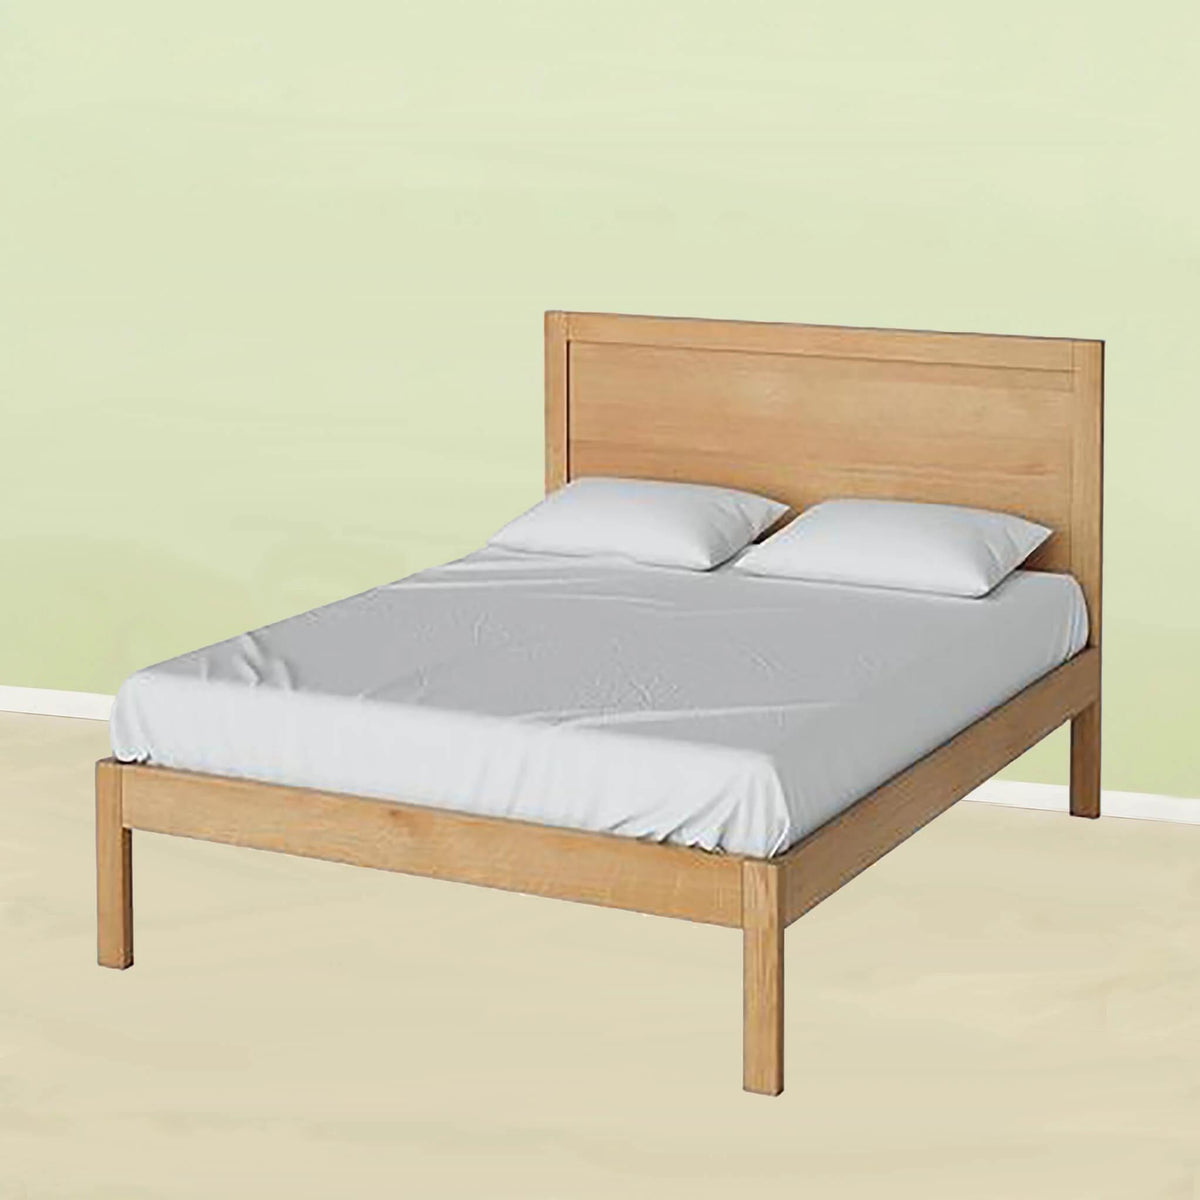 "Abbey Waxed or Surrey Oak 4'6"" Double Bed Frame from Roseland Furniture"